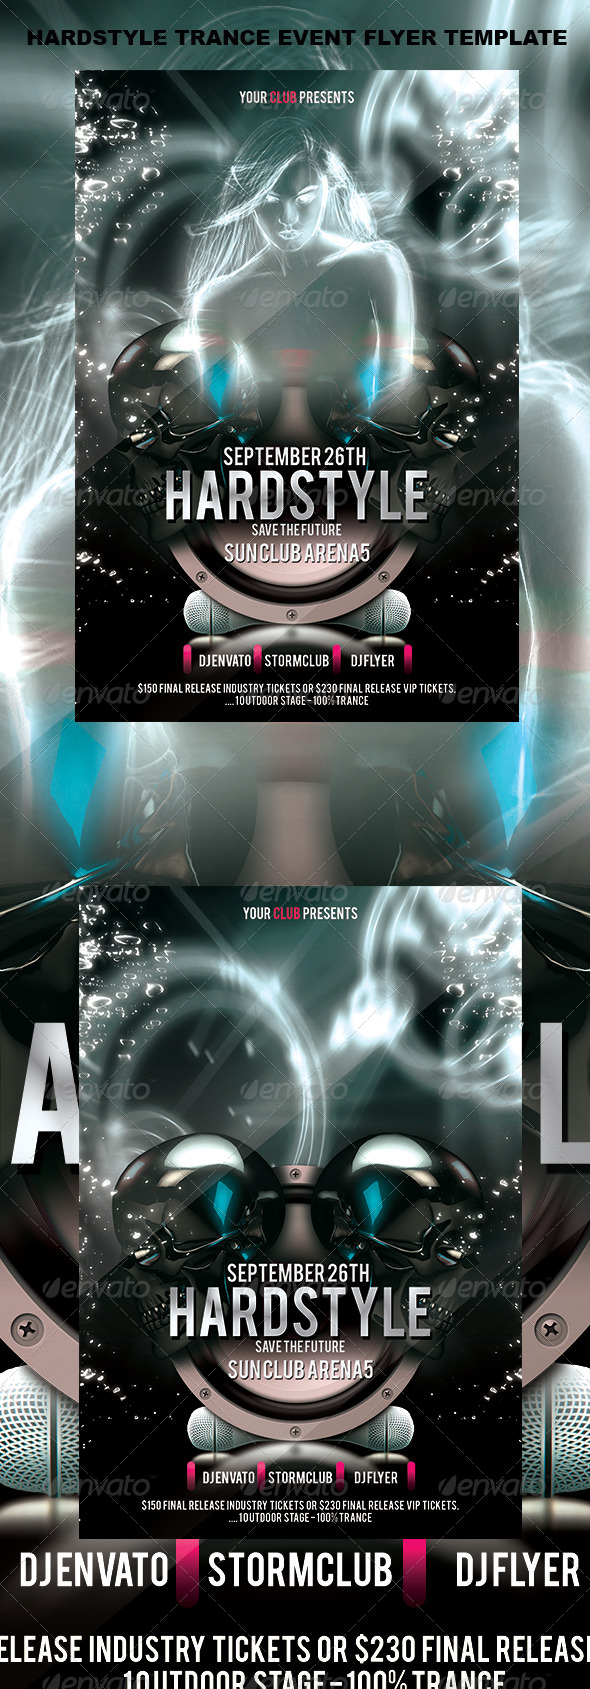 Hardstyle Trance Event Flyer Template - Events Flyers